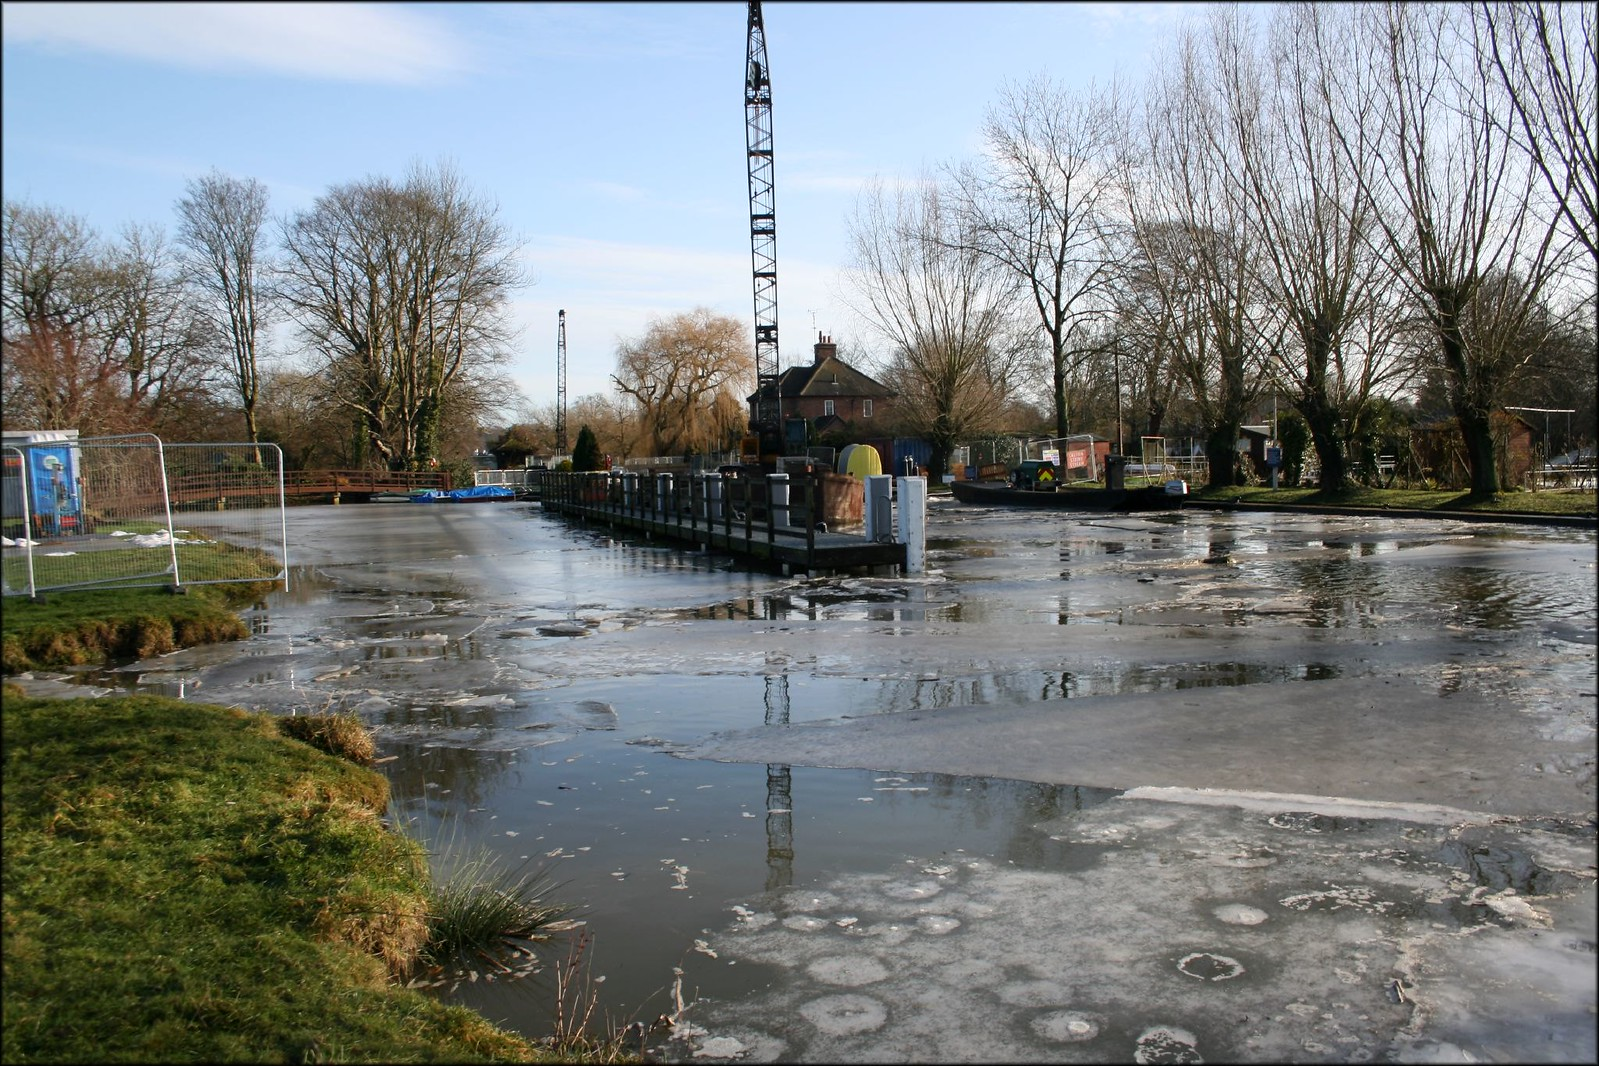 A part-frozen Shiplake lock